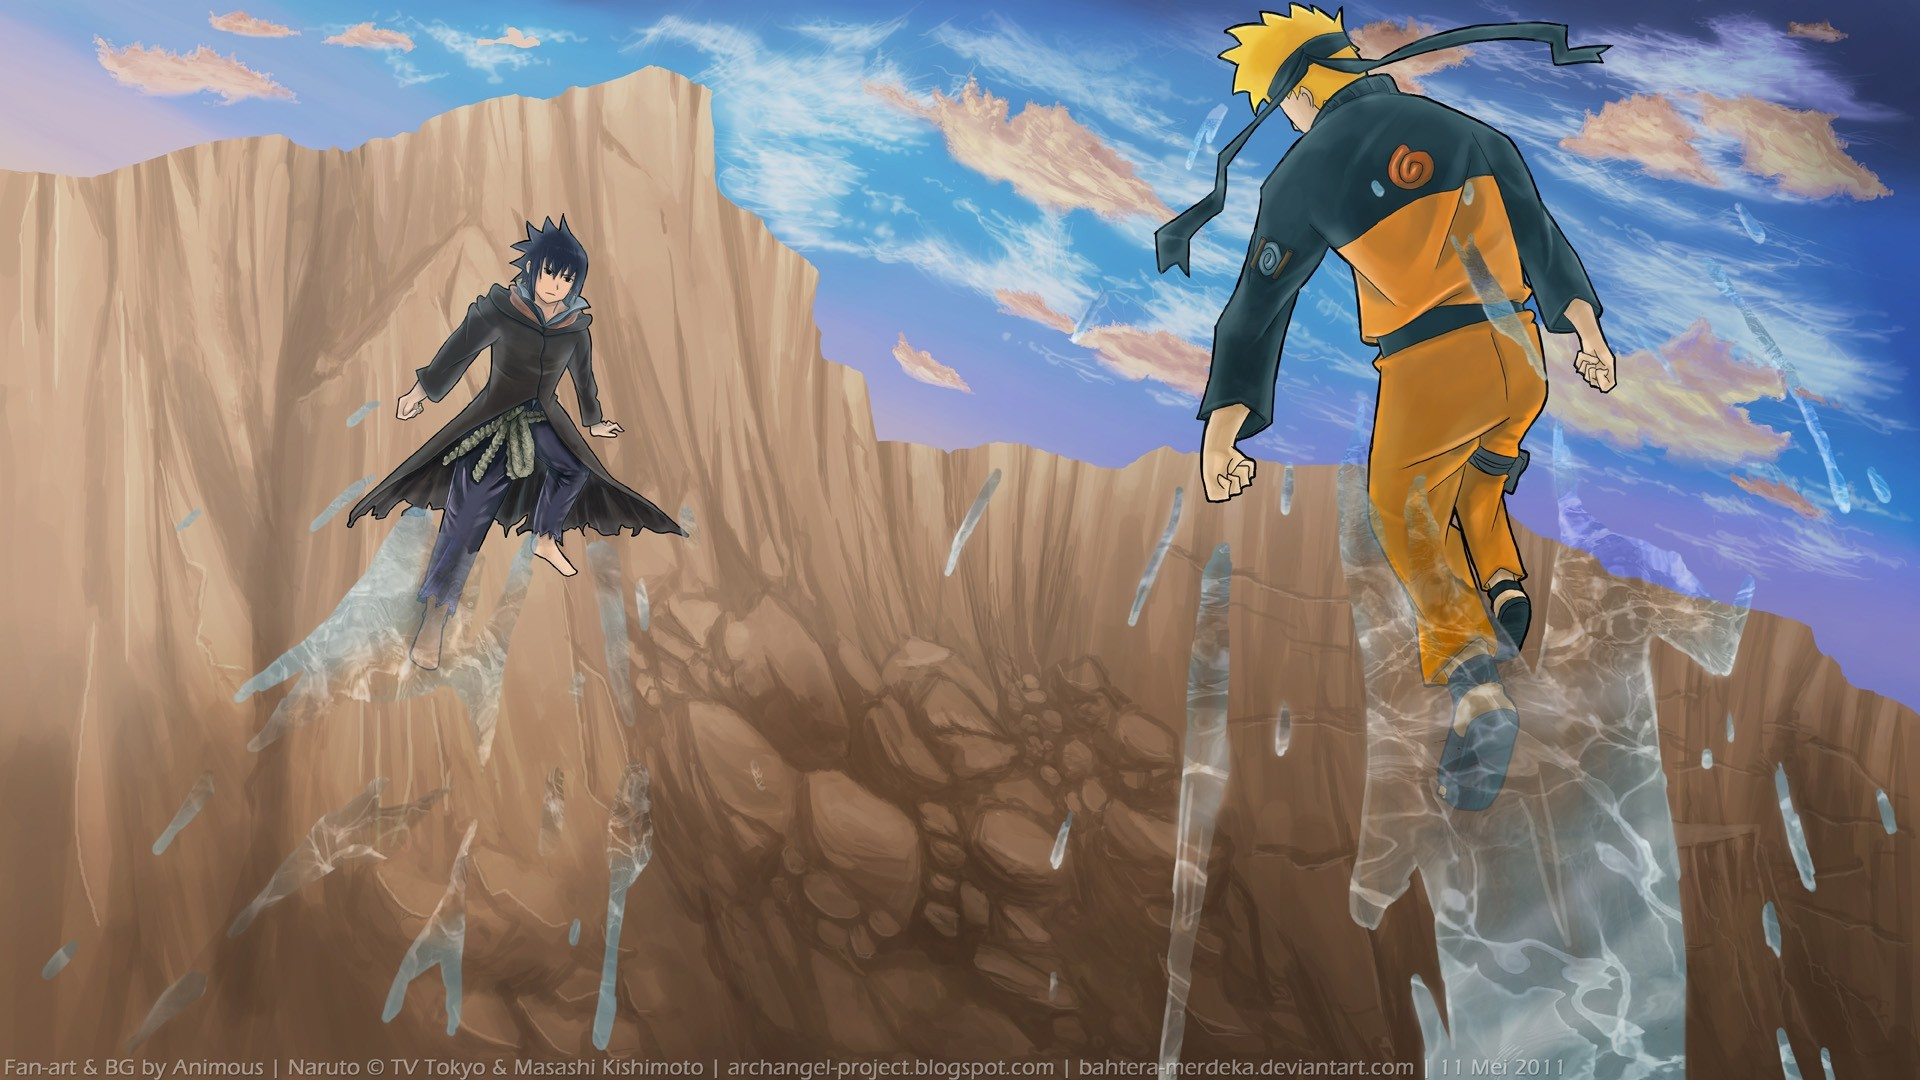 1920x1080 Naruto Sasuke Shippuden Art HD Wallpaper